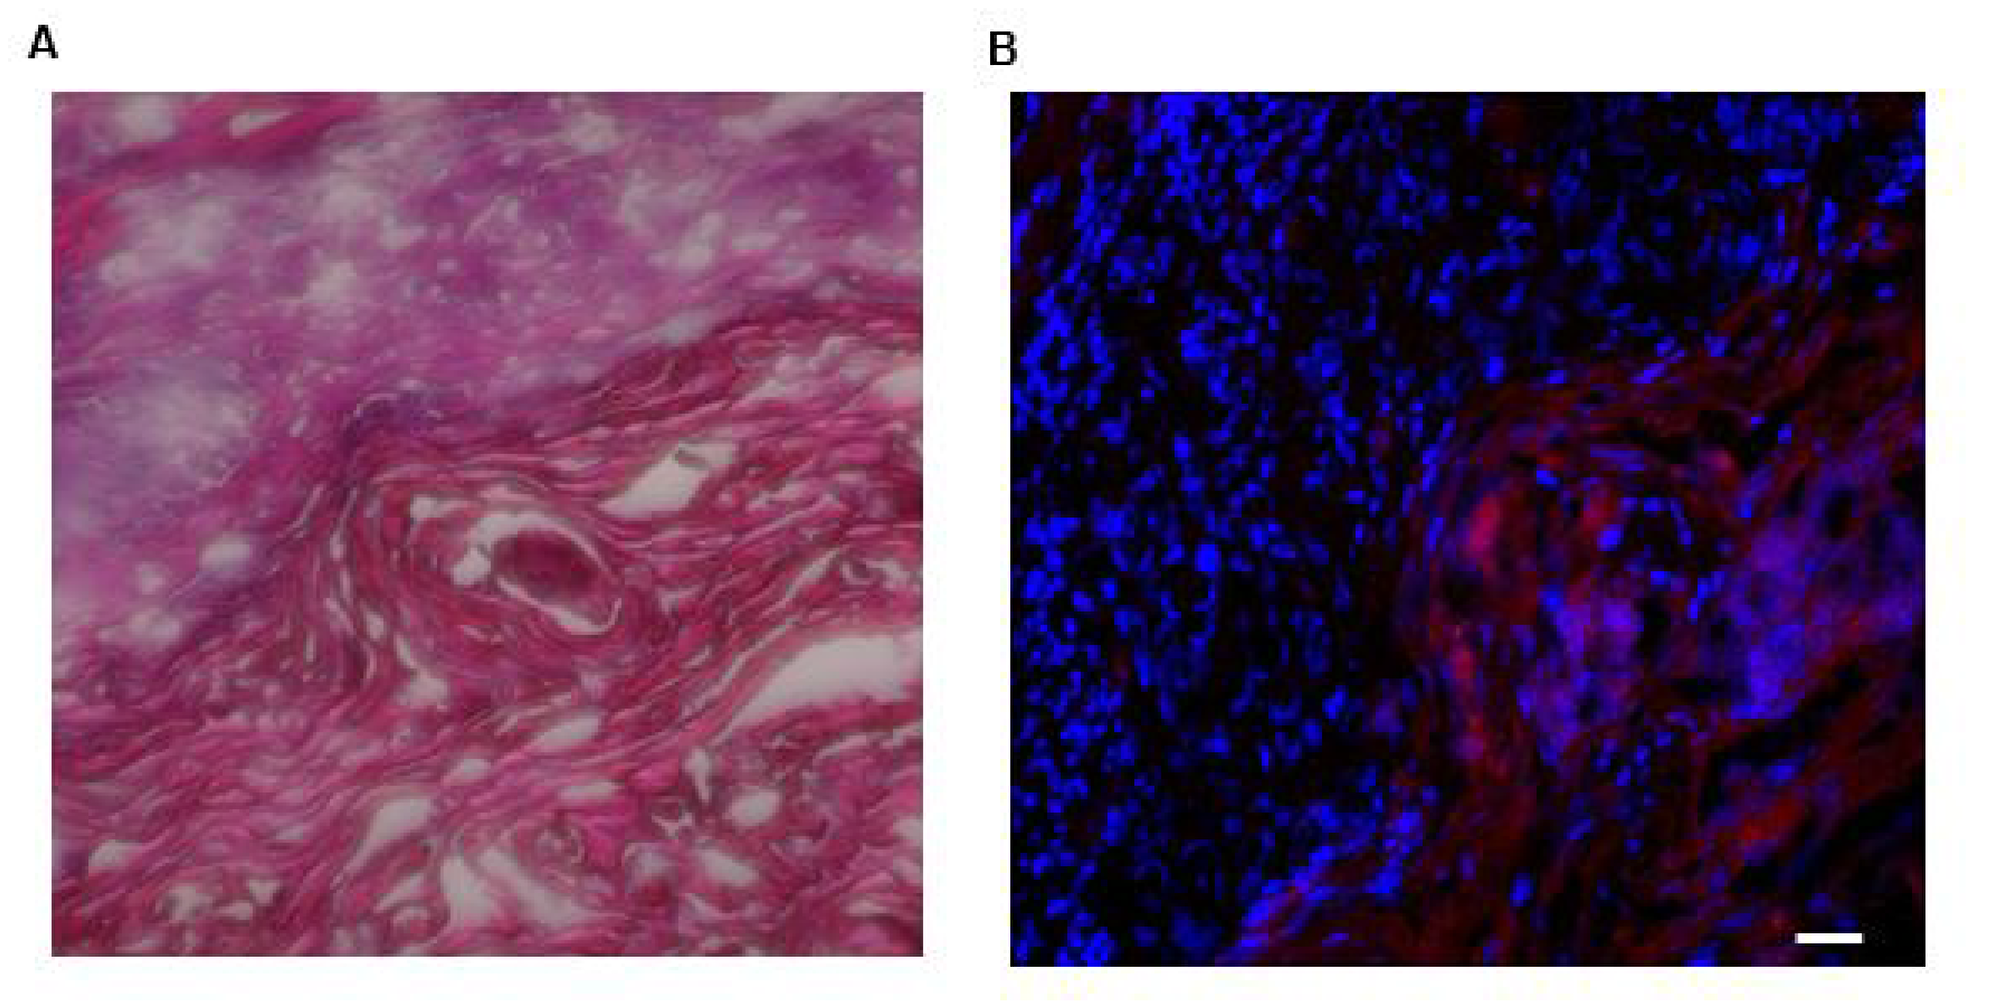 Photomicrographs of H&E staining of and LLY13-biotin/SA-Cy5.5 uptake into excised HSC3 implanted tongue tissues (20X).